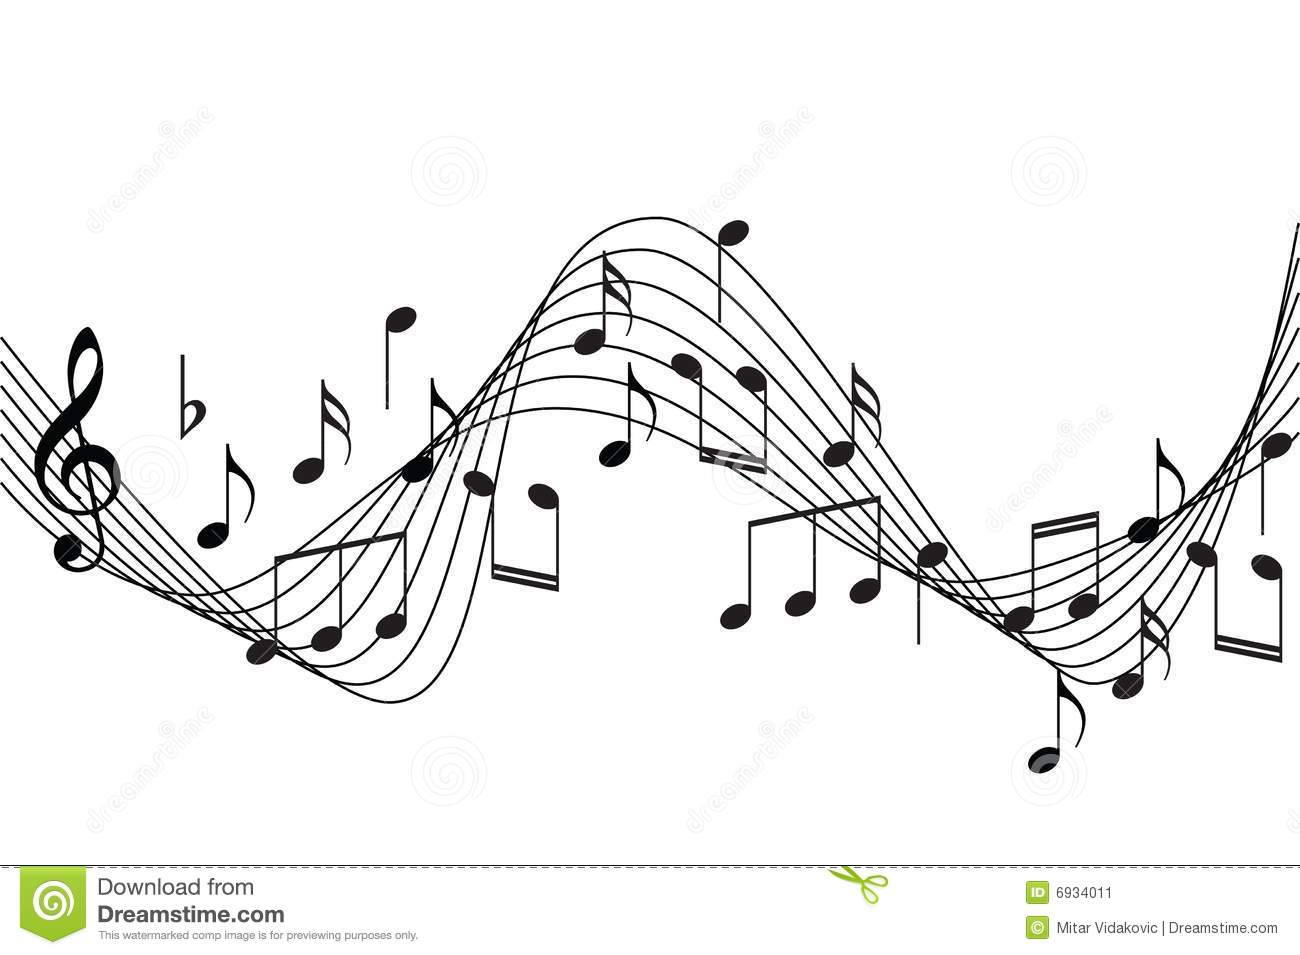 Music Notes Illustration Isolated On White Background Mr No Pr No 5